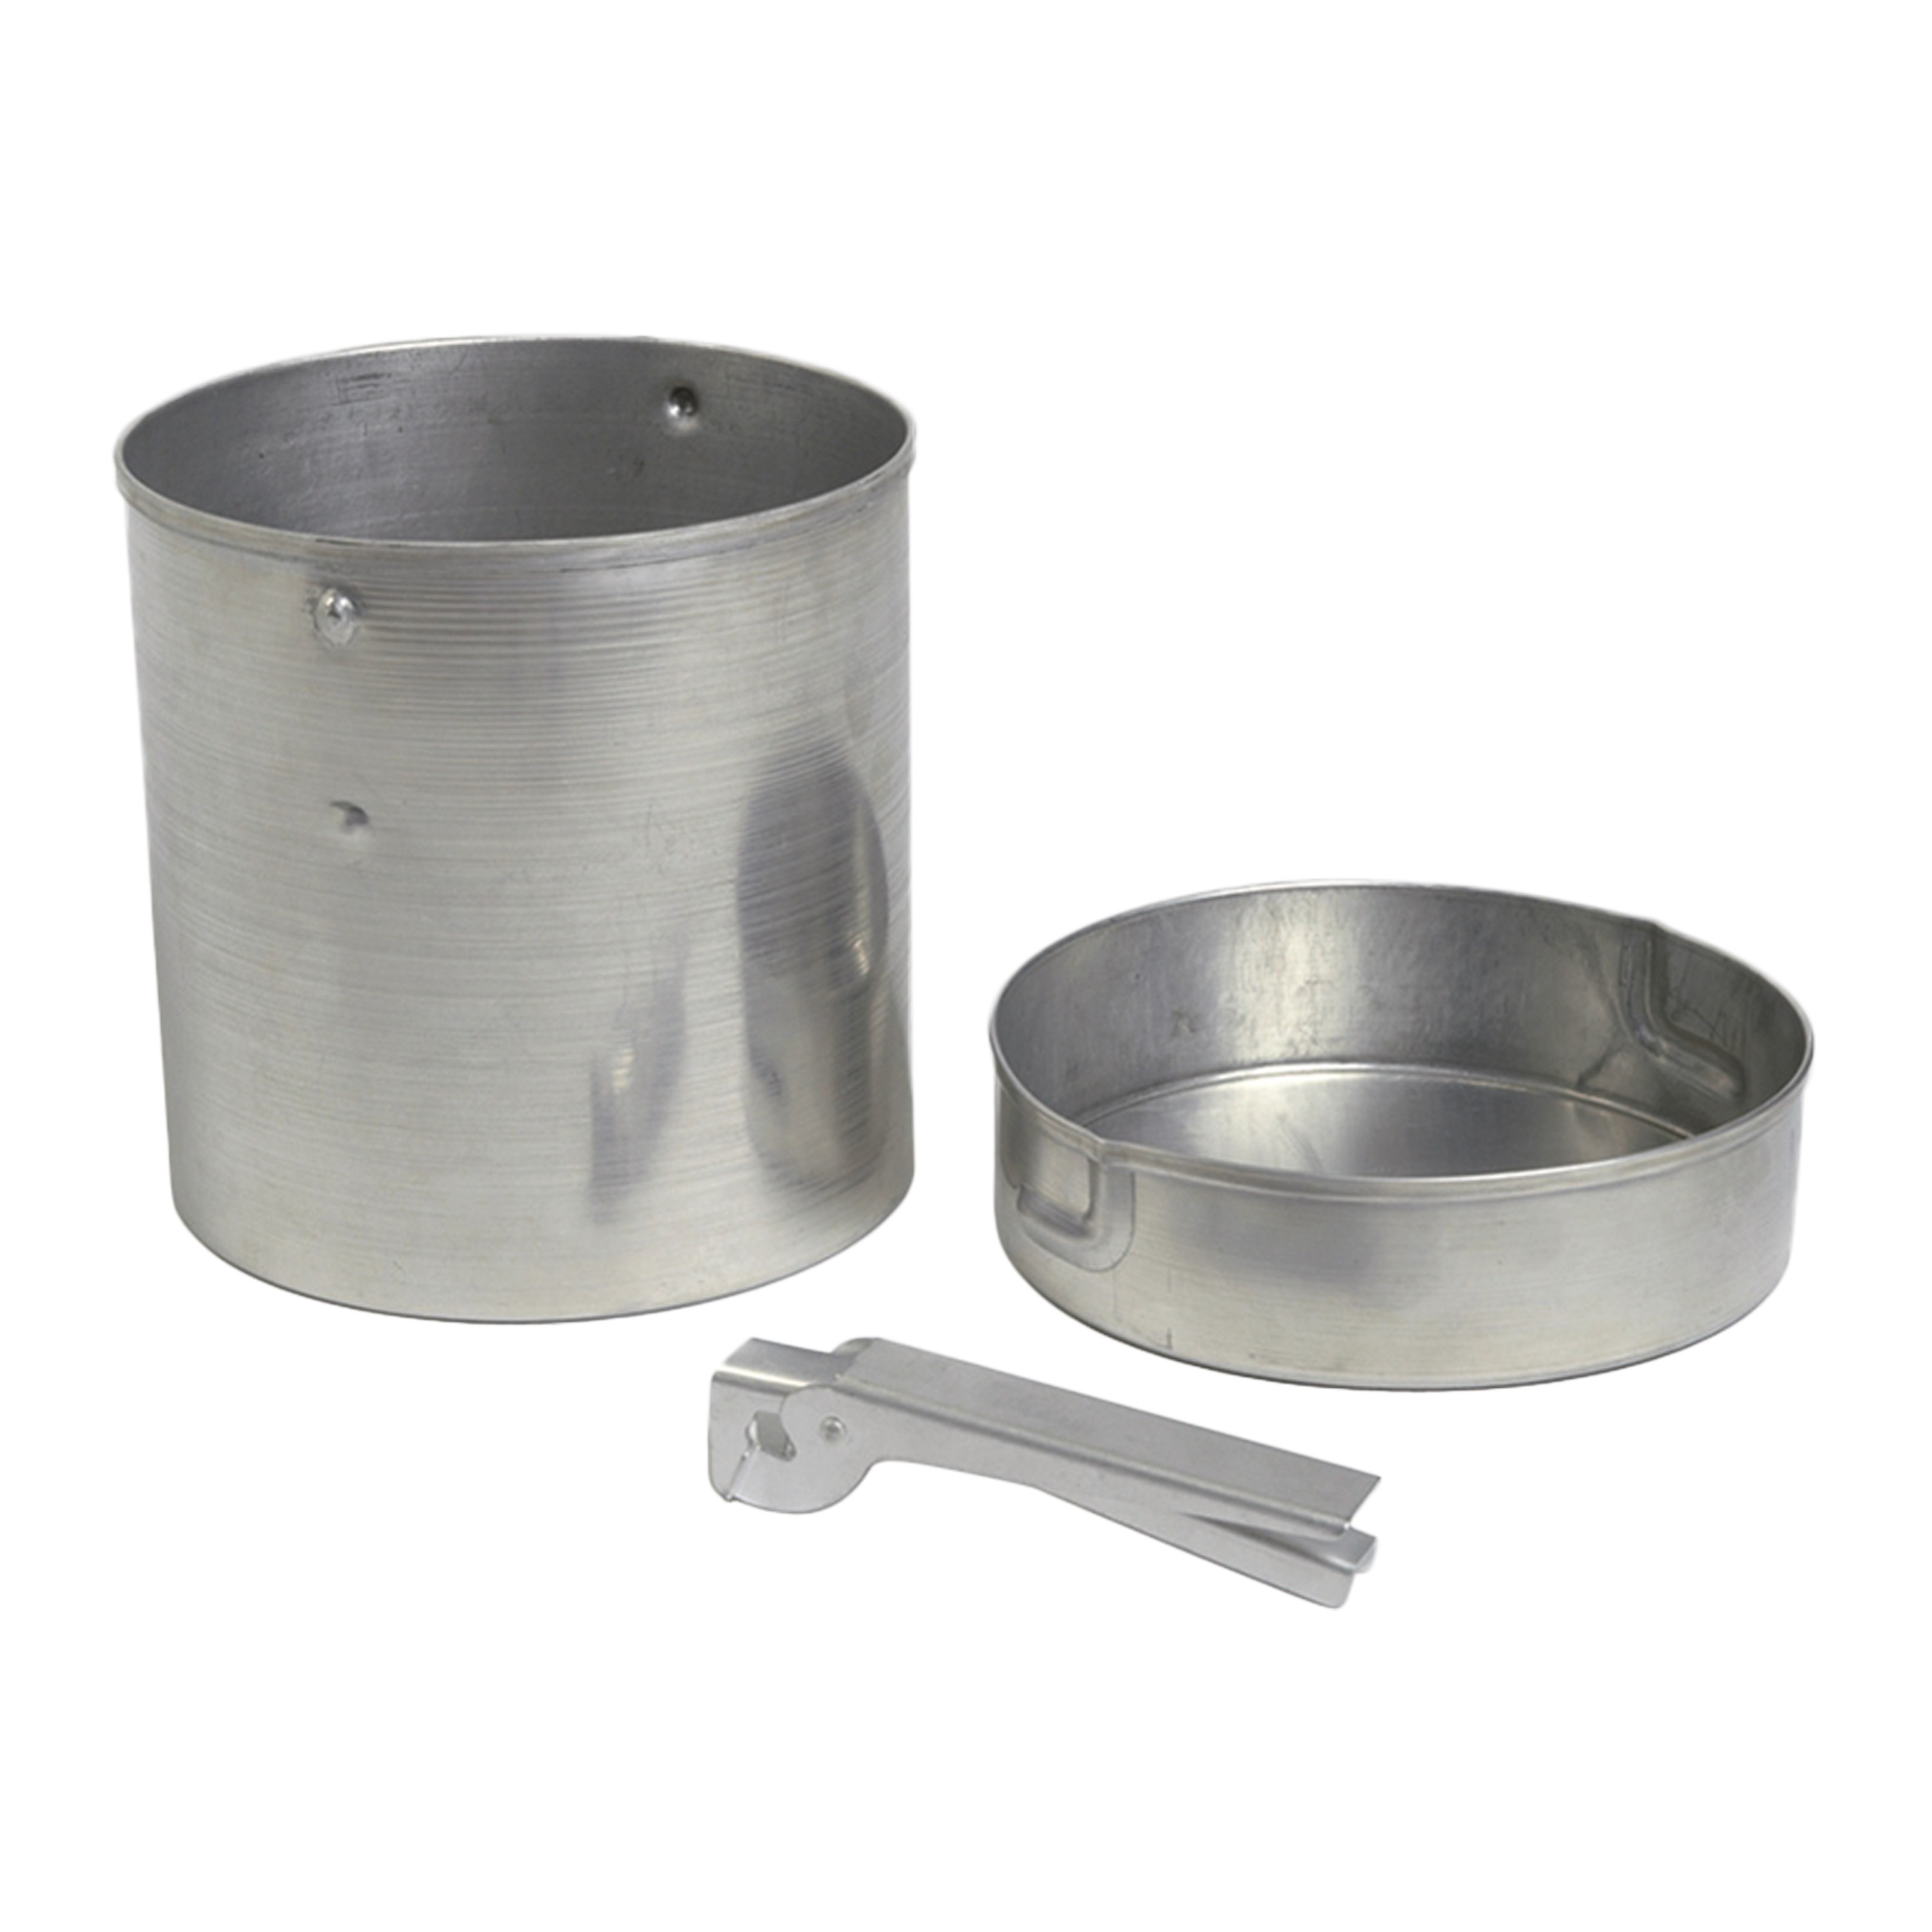 Pot with Handle for Liquid Fuel Stoves